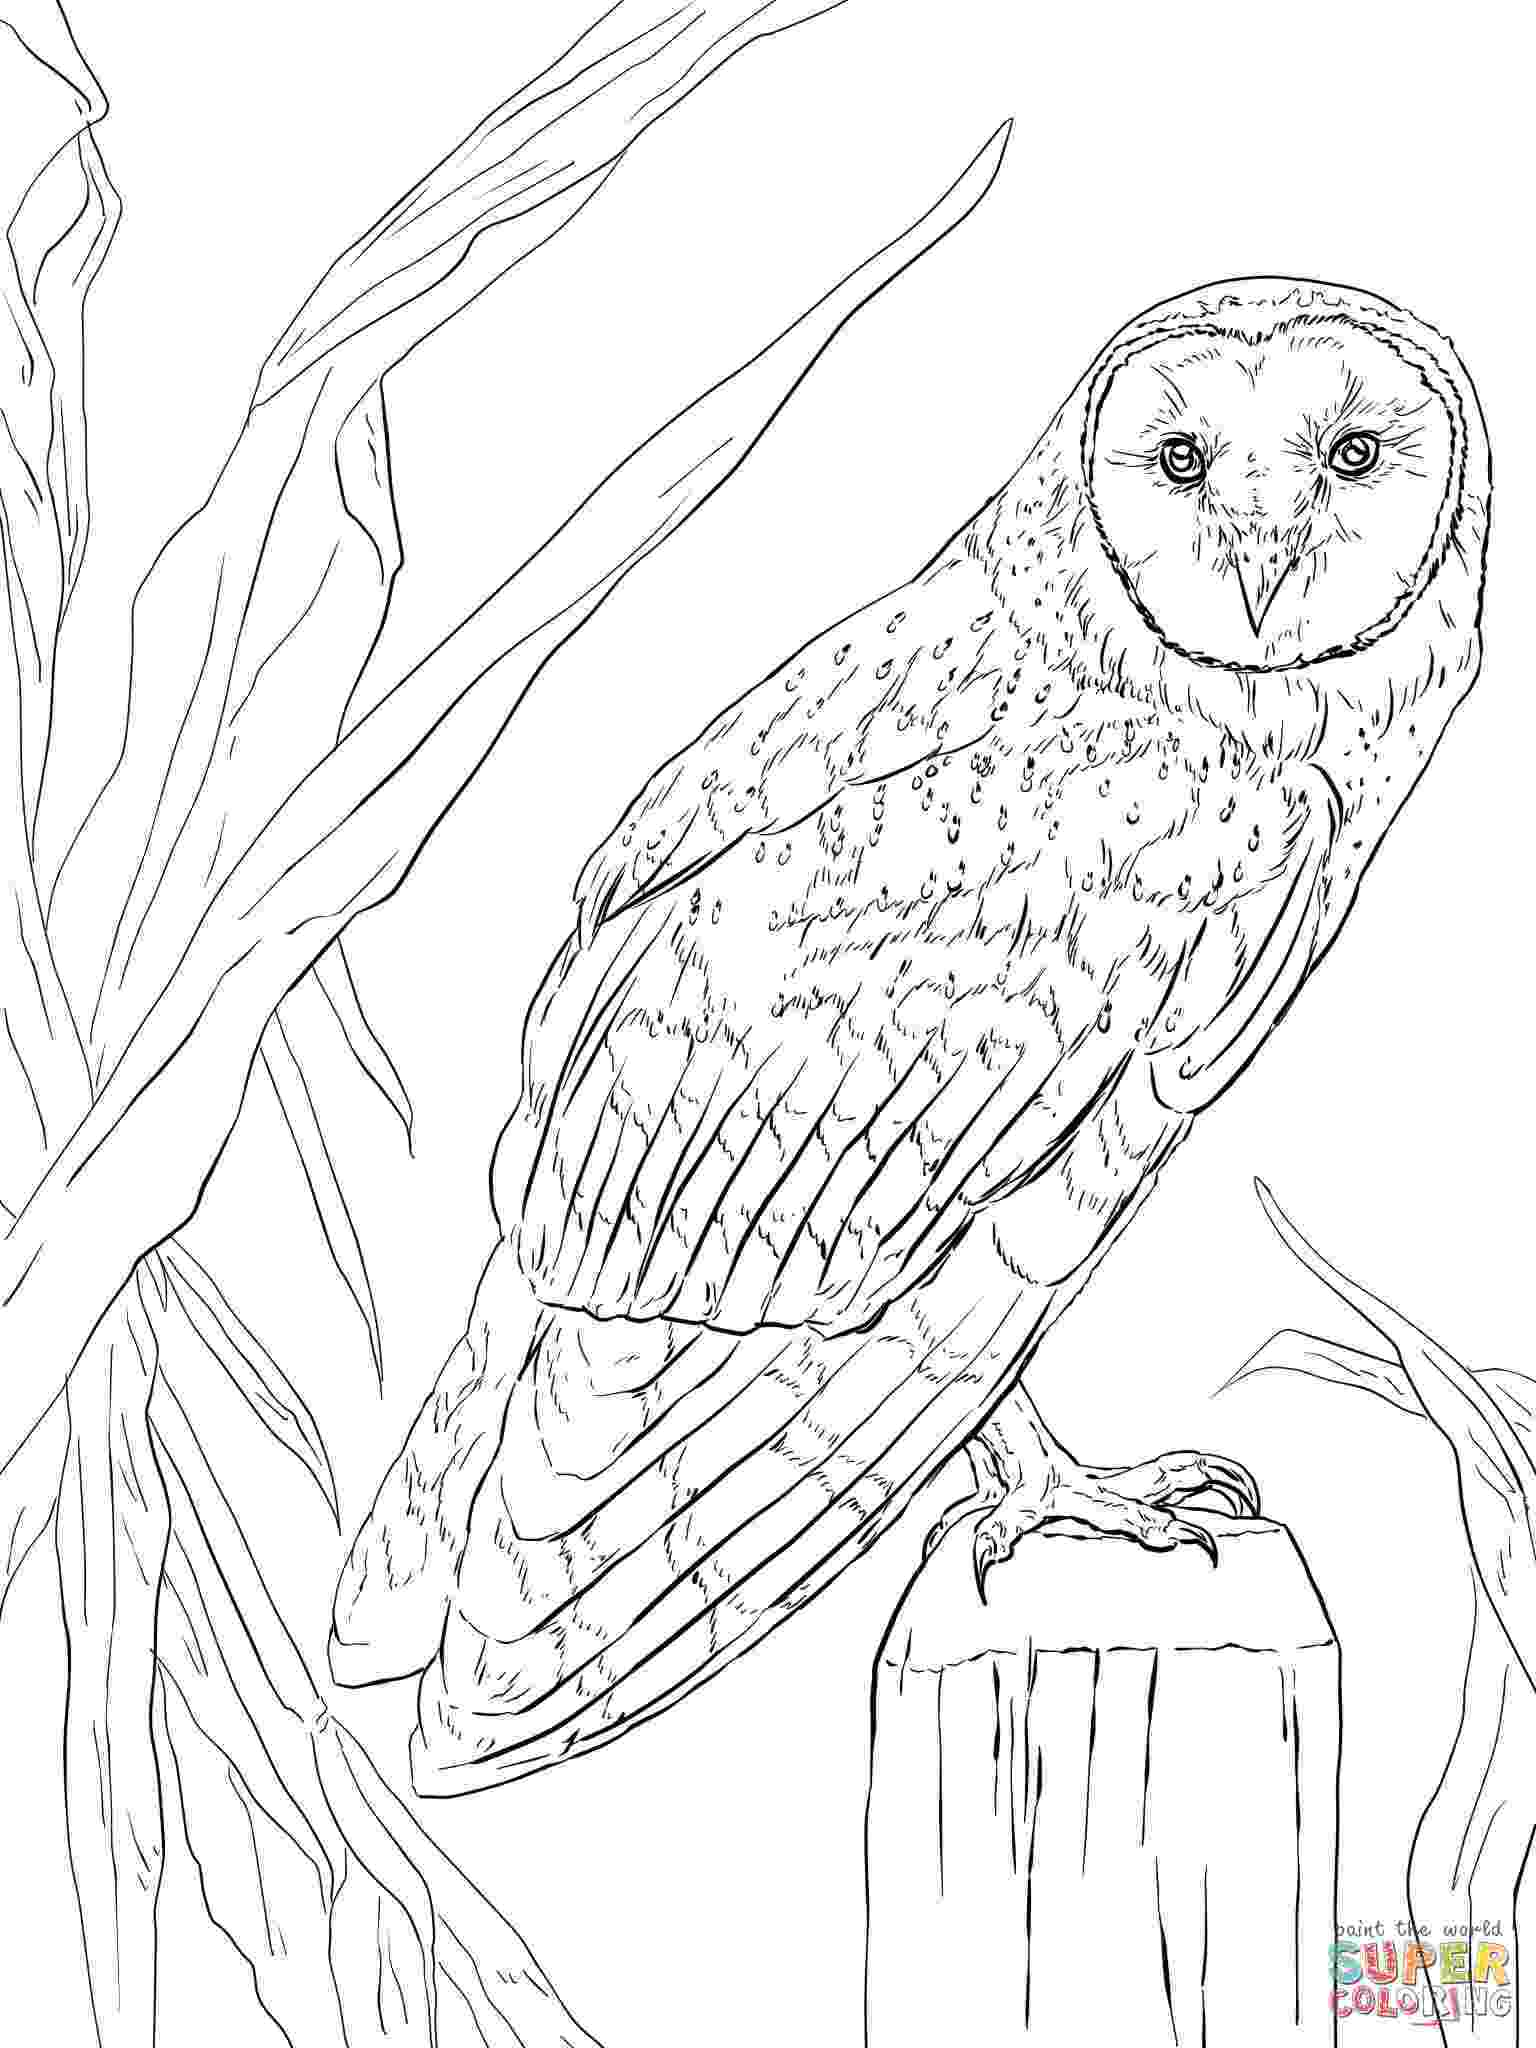 nocturnal animal colouring sheets nocturnal animals coloring pages coloring home nocturnal sheets colouring animal